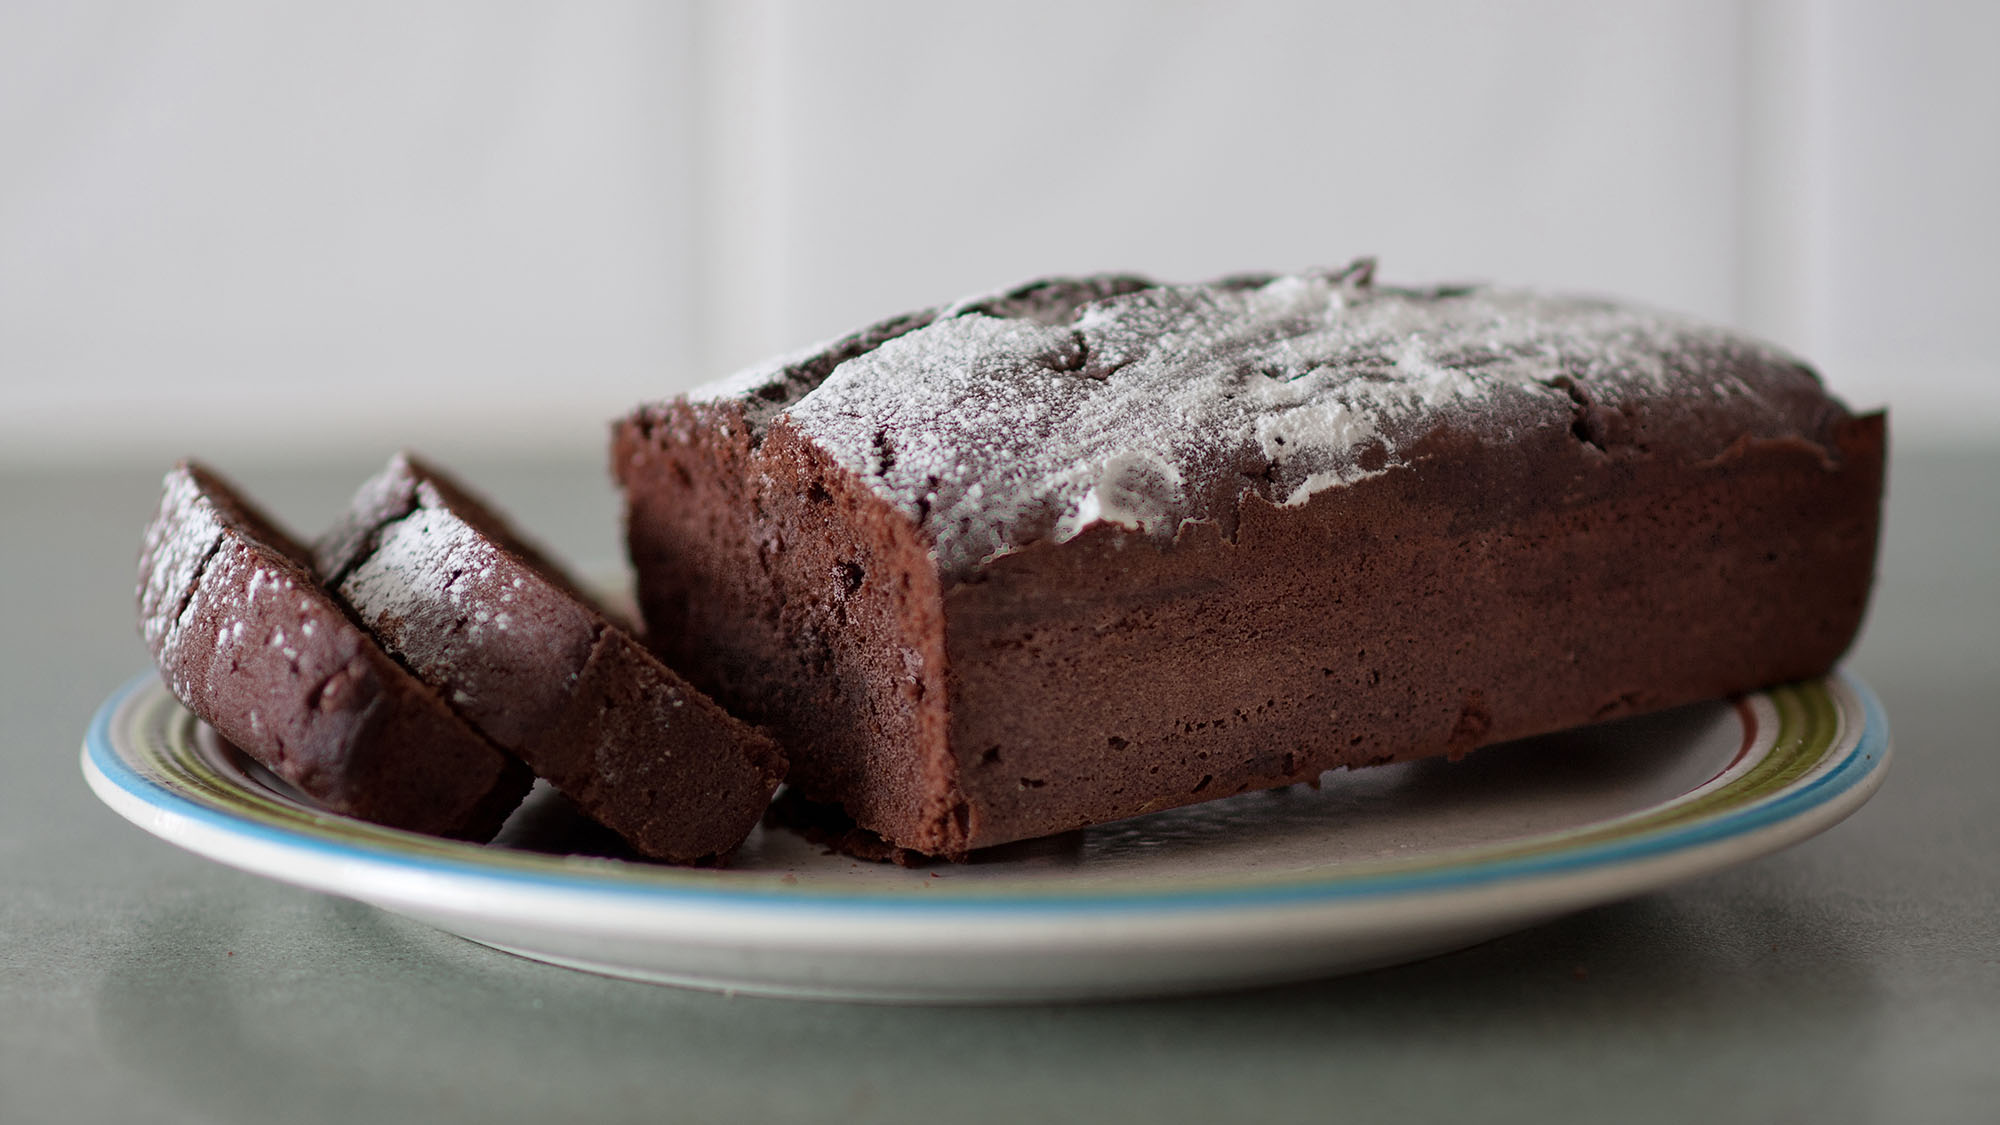 Chocolate almond loaf